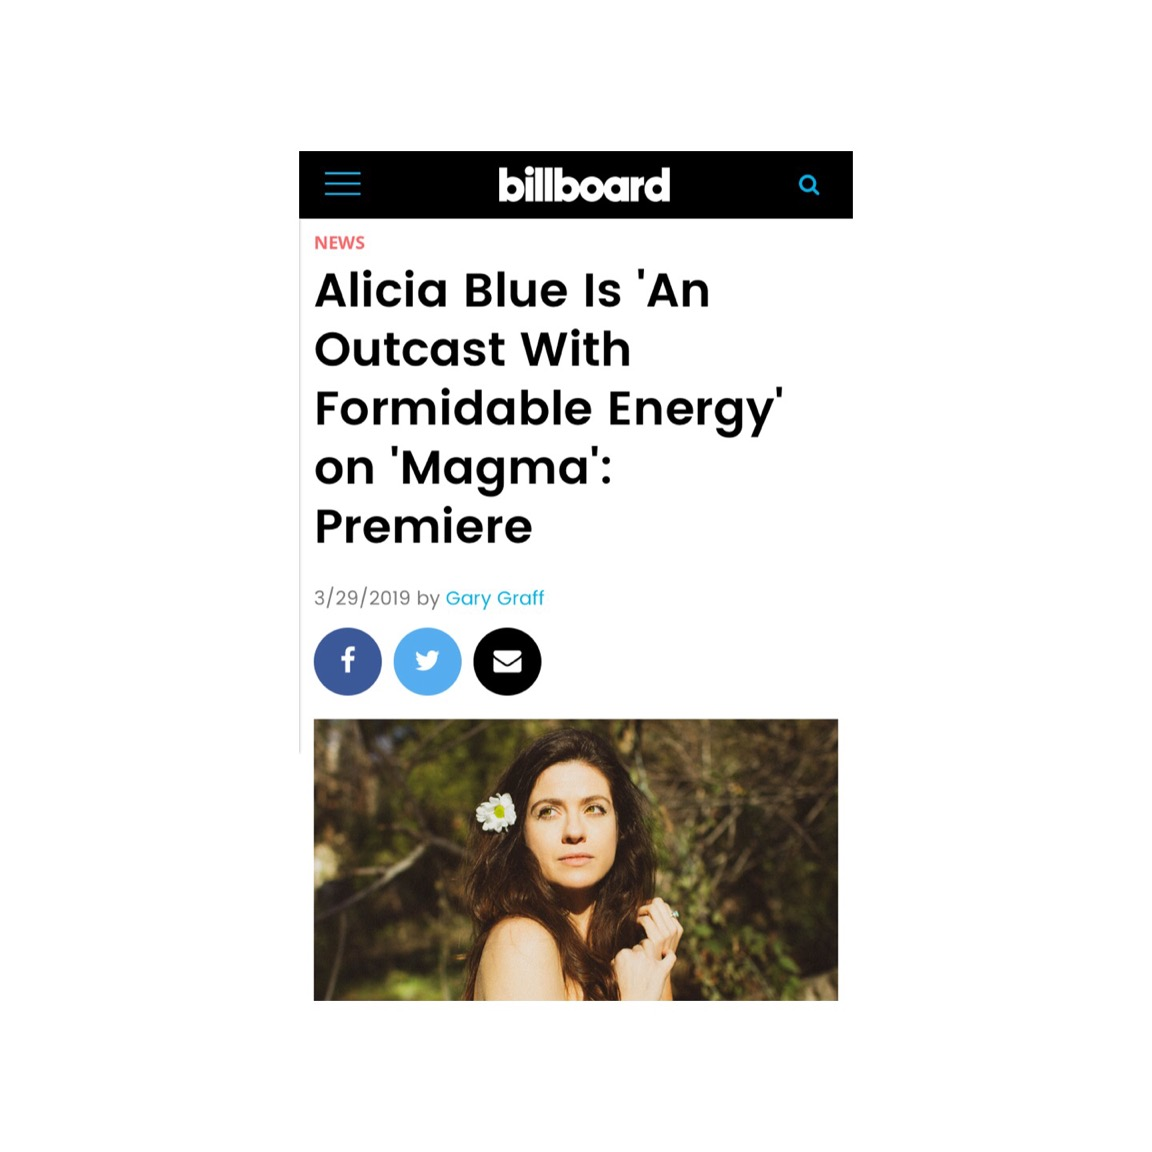 Alicia Blue Billboard Magma.JPG